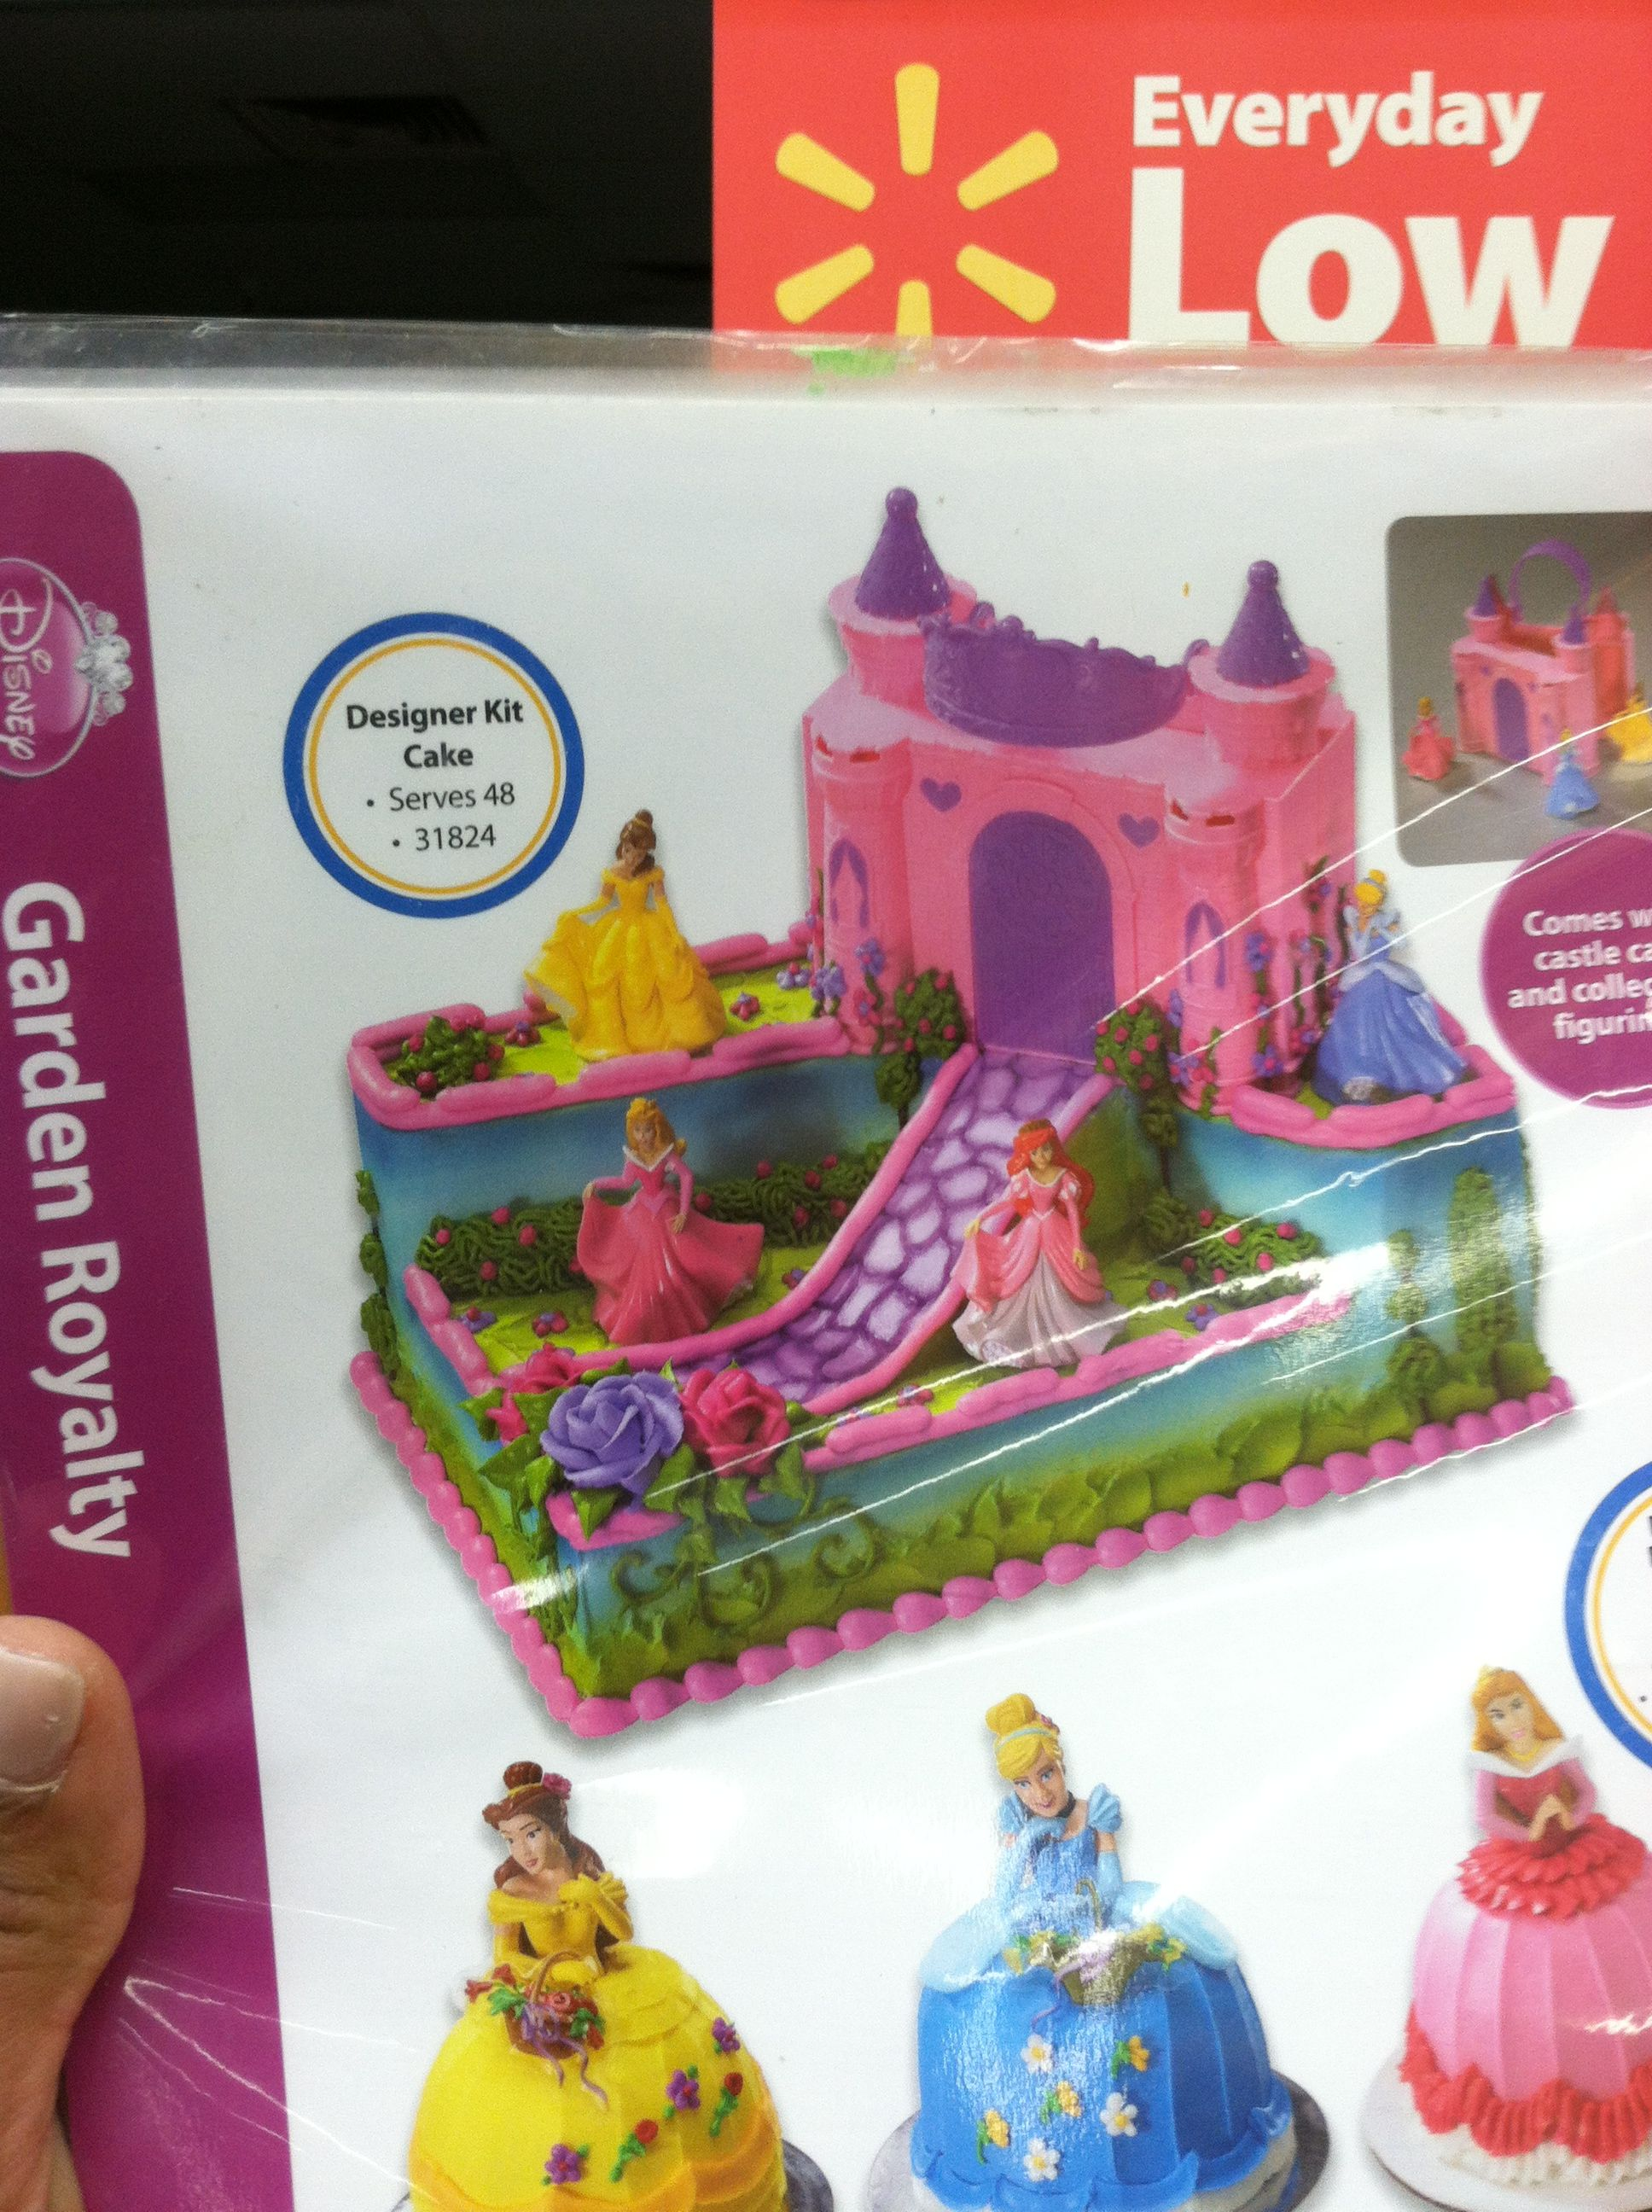 Princess Cake 38 At Walmart